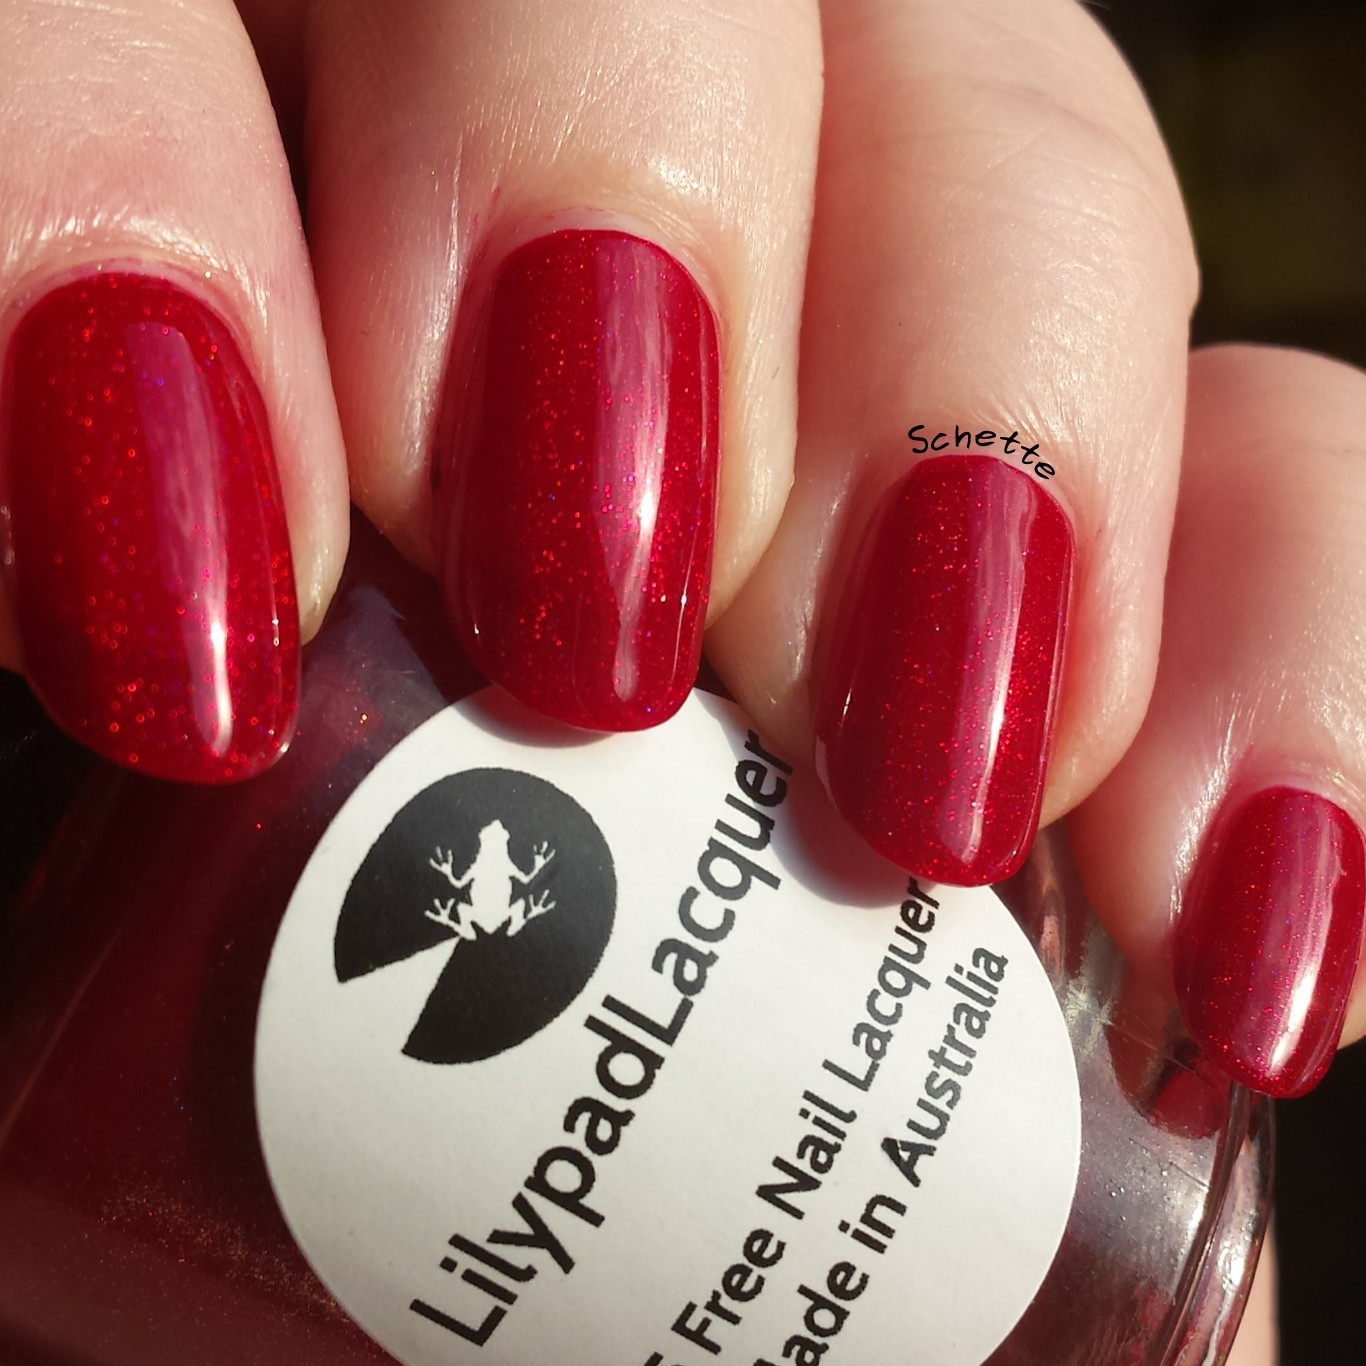 Lilypad Lacquer : Rebel at heart